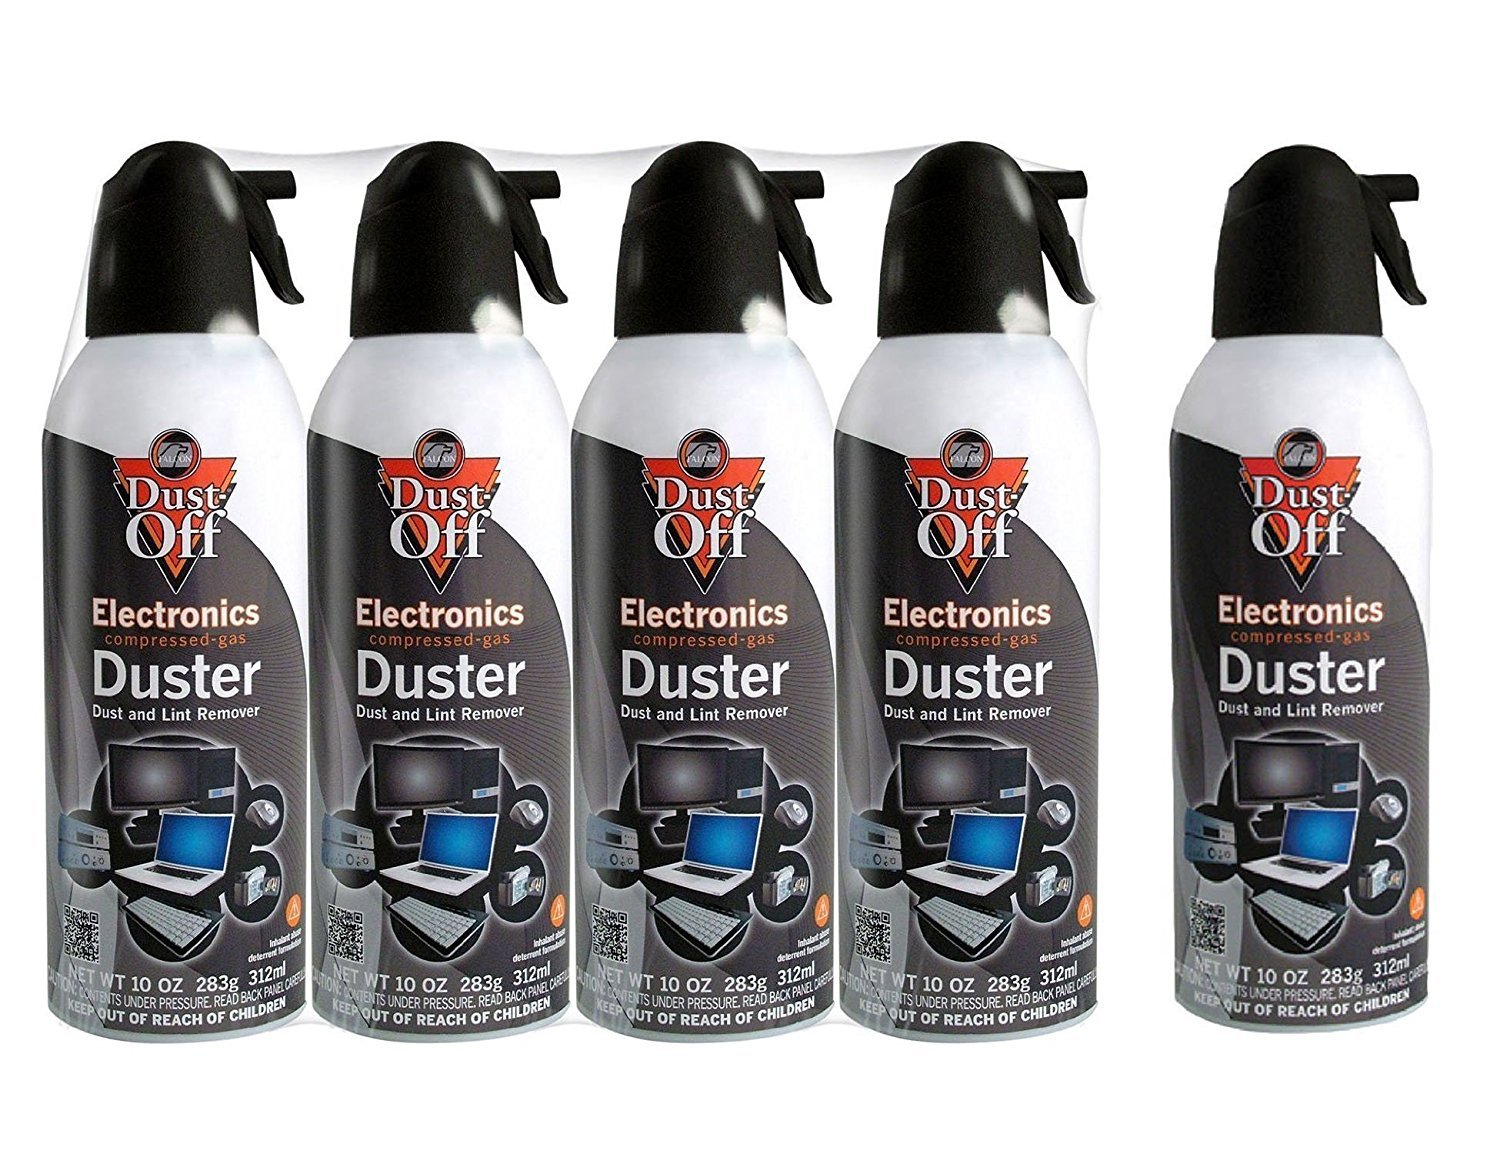 Dust-Off Disposable Compressed Gas Duster, 10 oz Cans - 5 Packs by Dust-Off (Image #1)